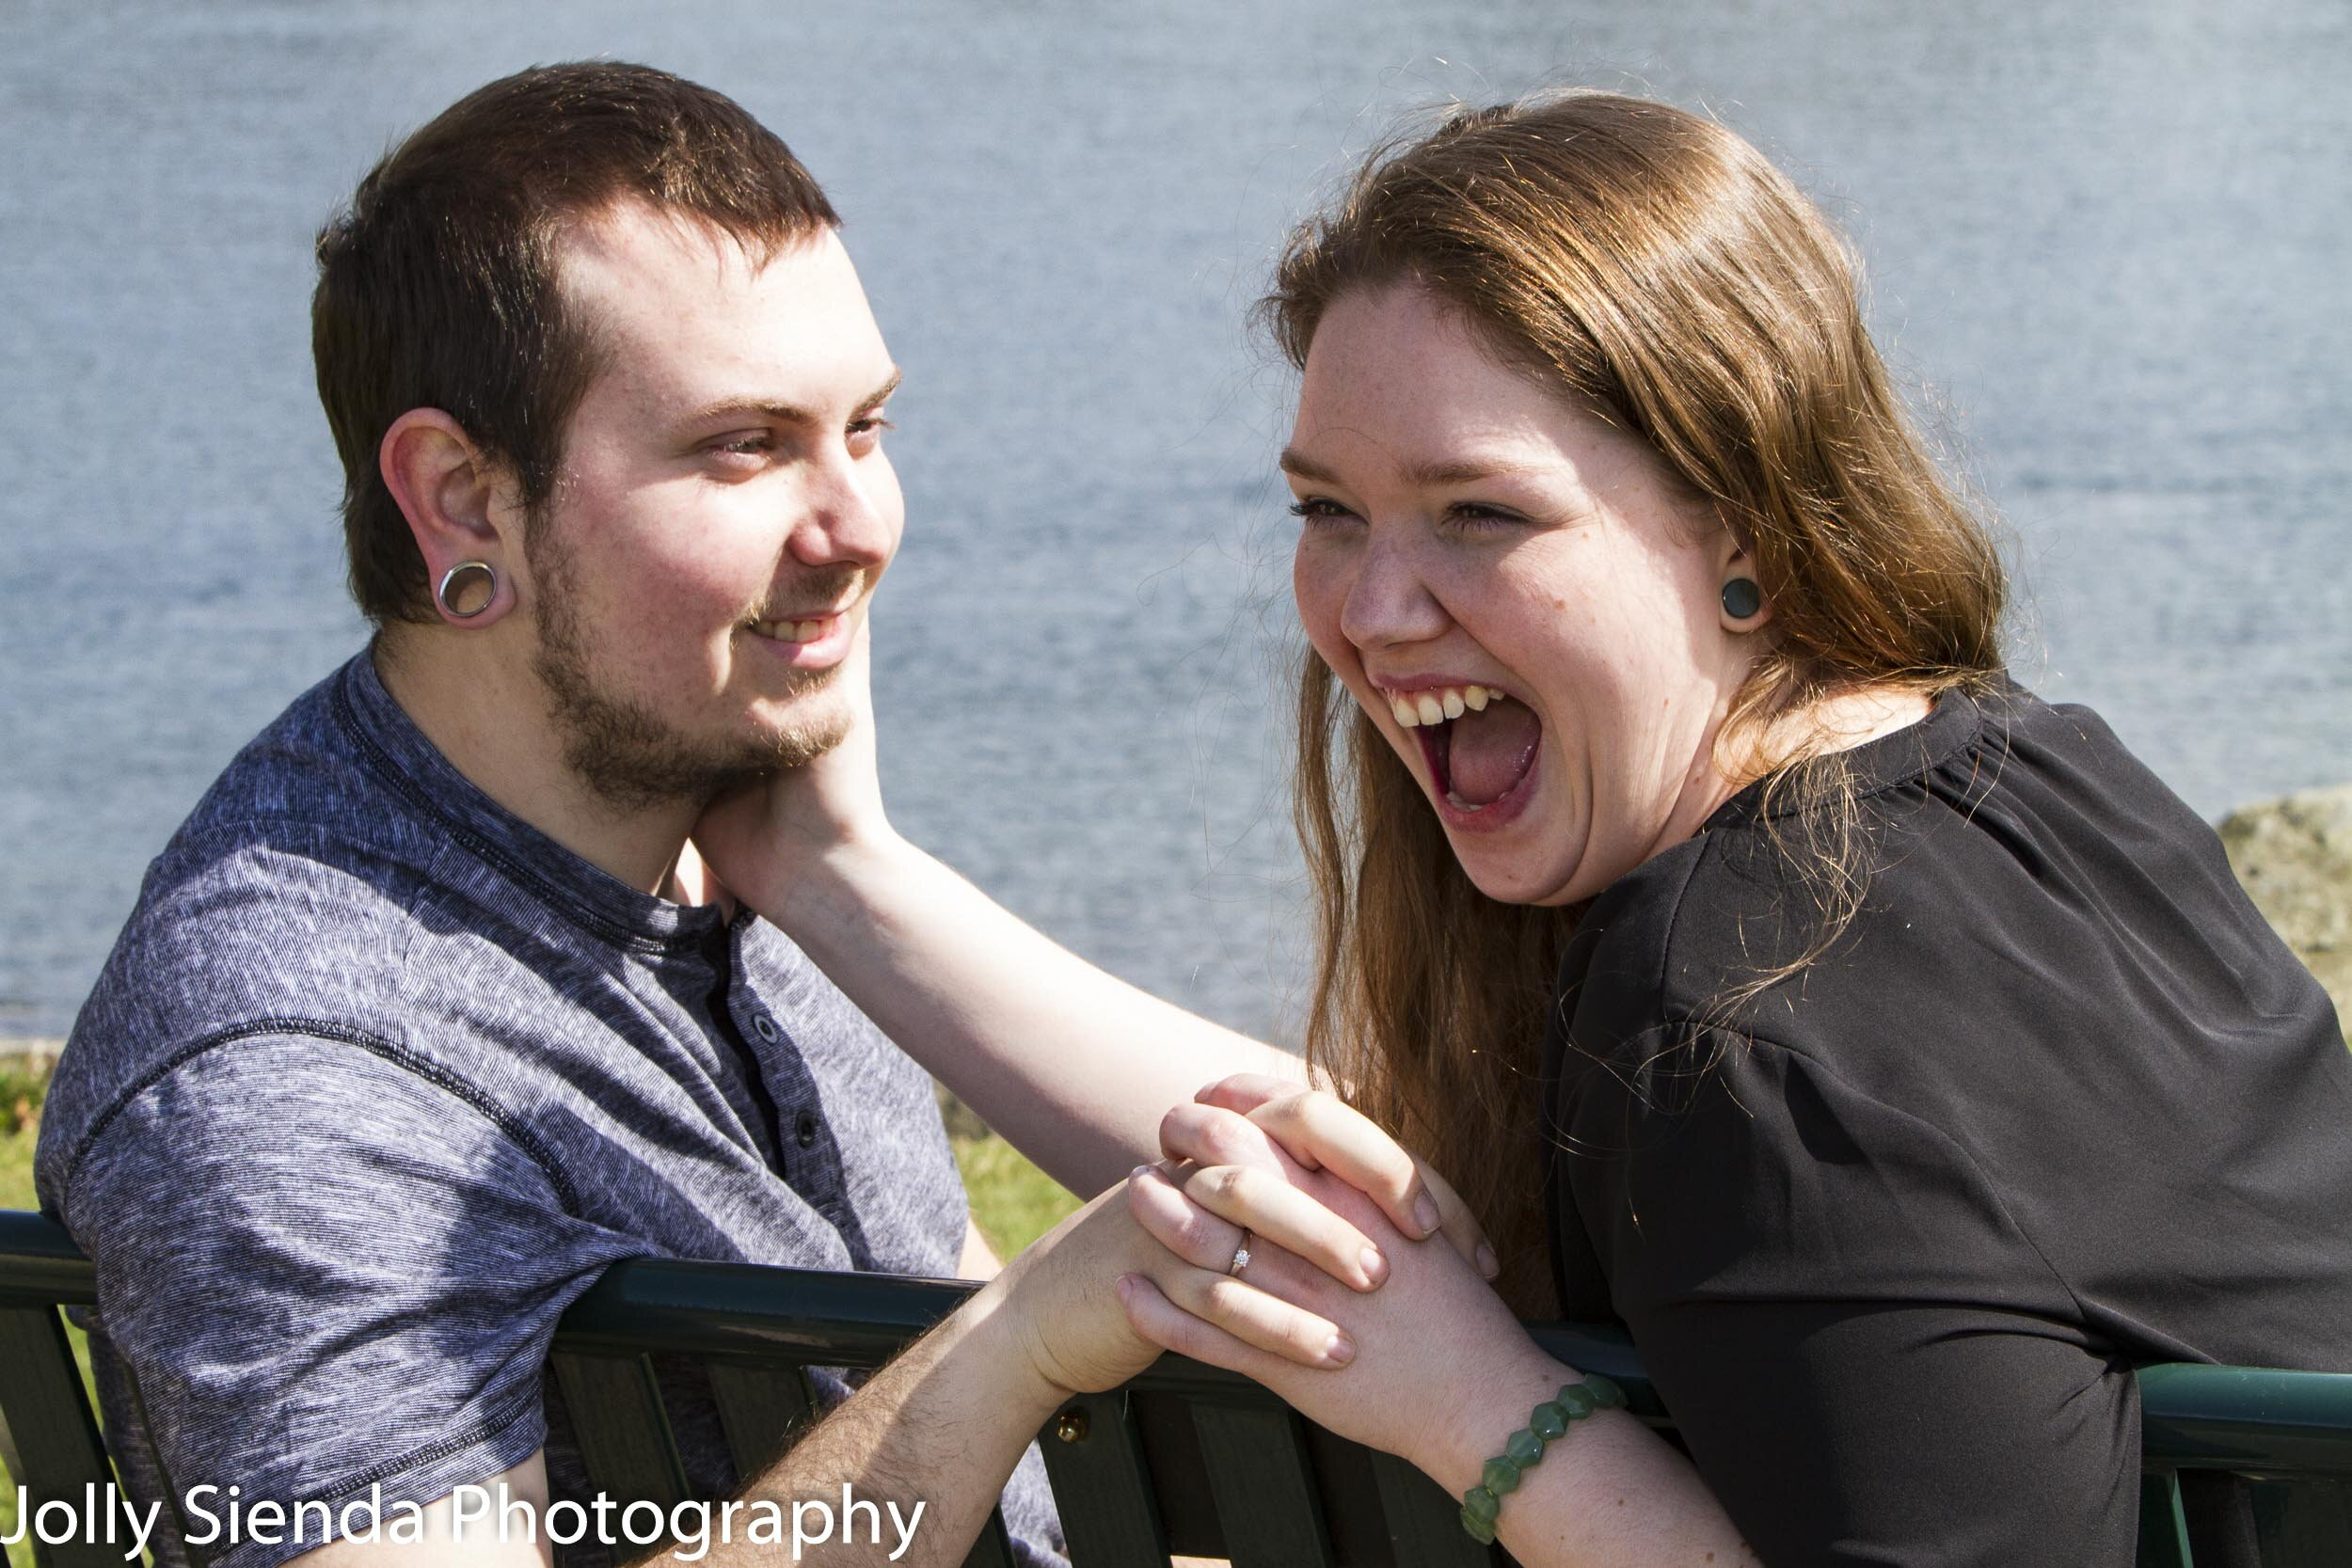 Engagement Photography by Jolly Sienda Photography